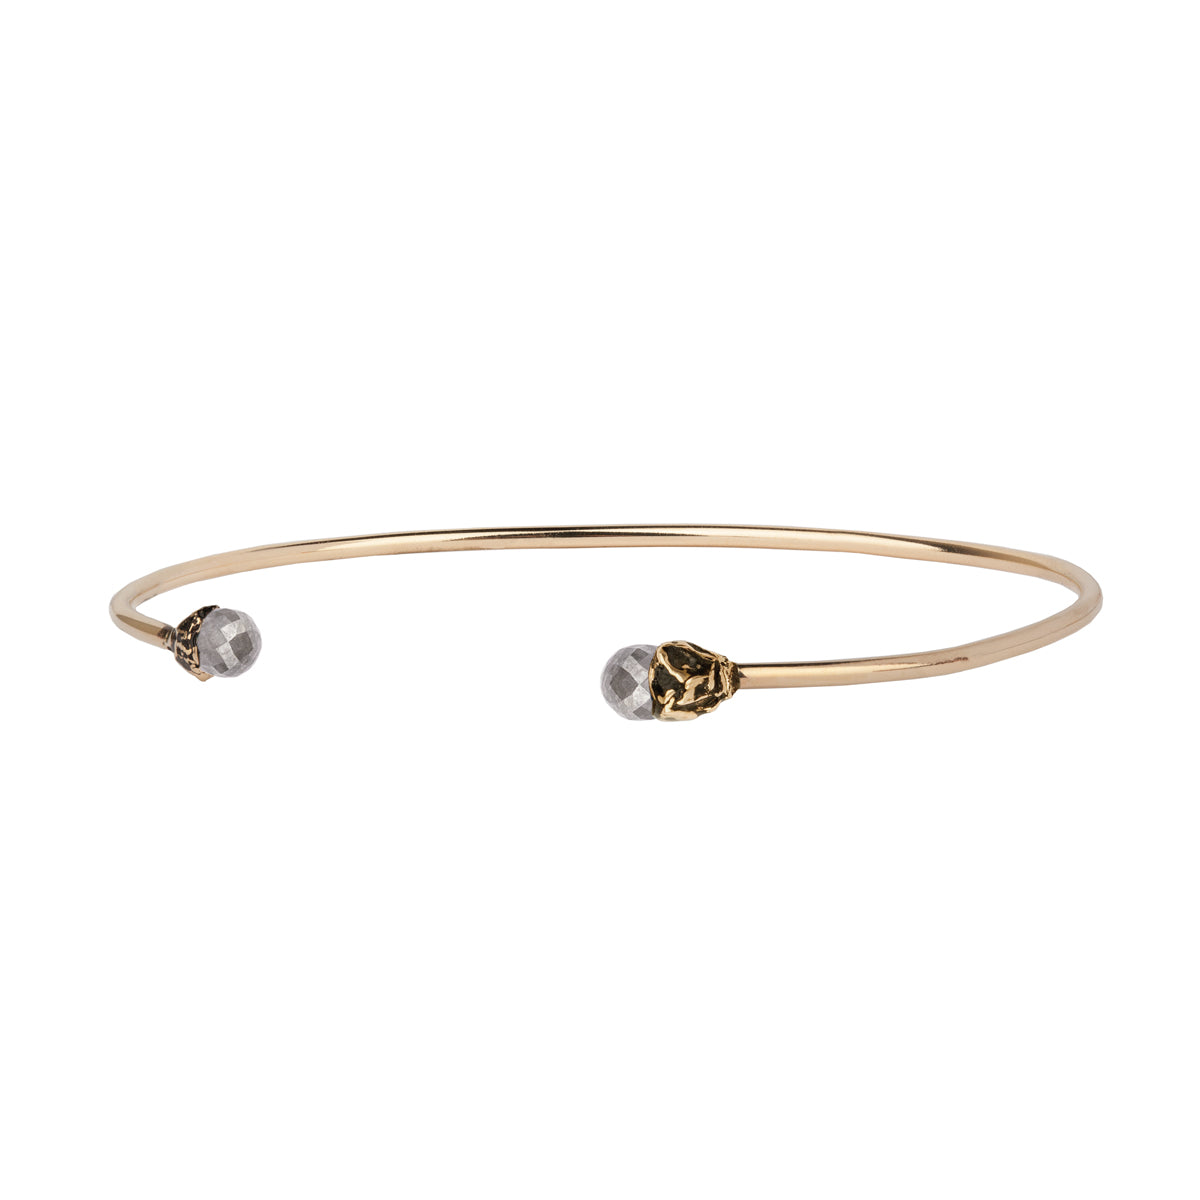 Ashen Rustic Diamond 14K Gold Capped Open Bangle